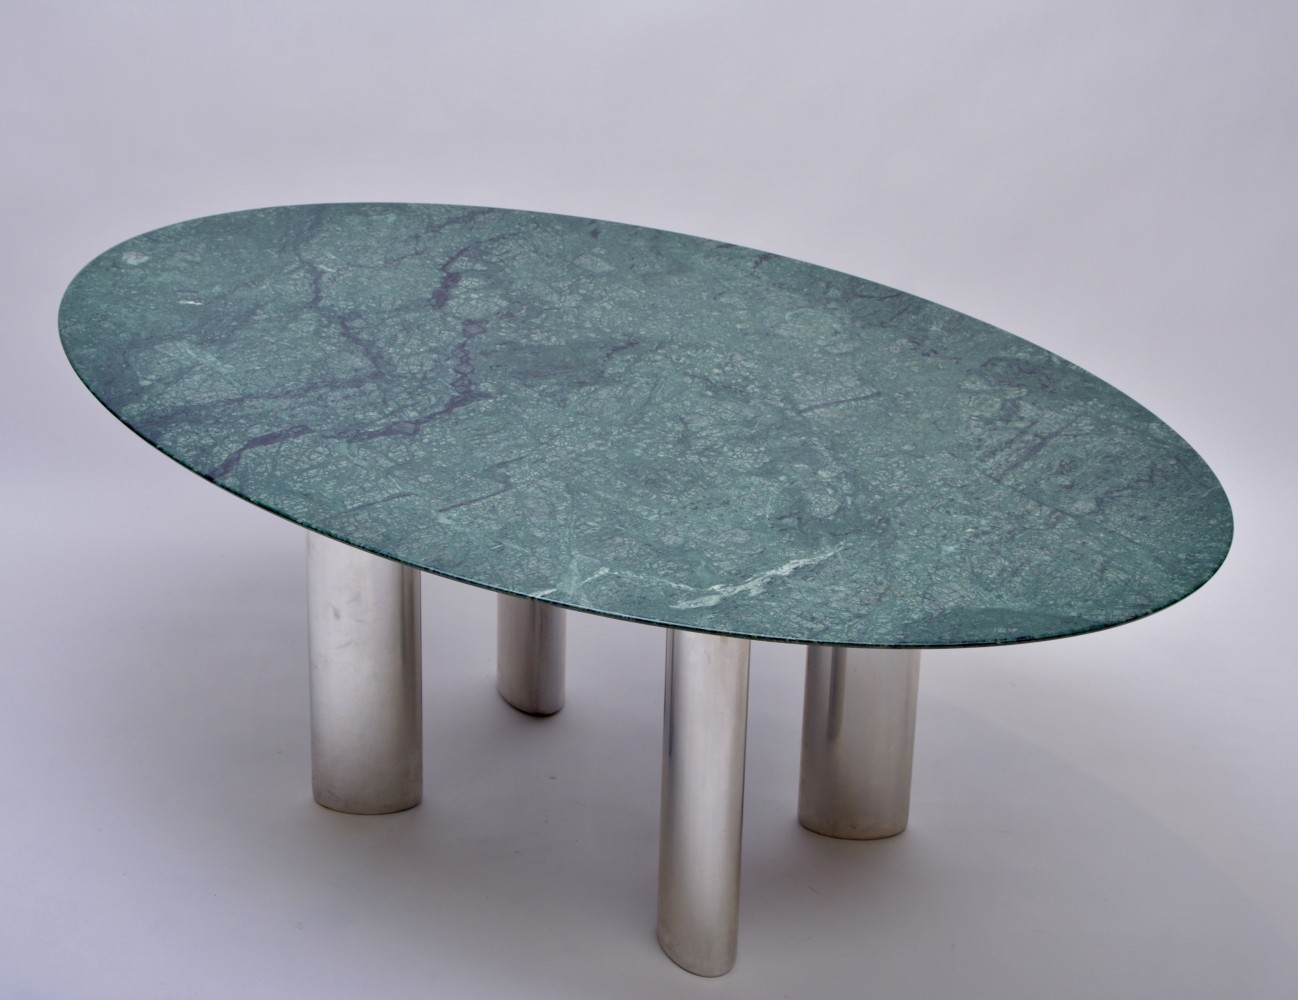 Green Marble Dining Table with chrome base, 1980s